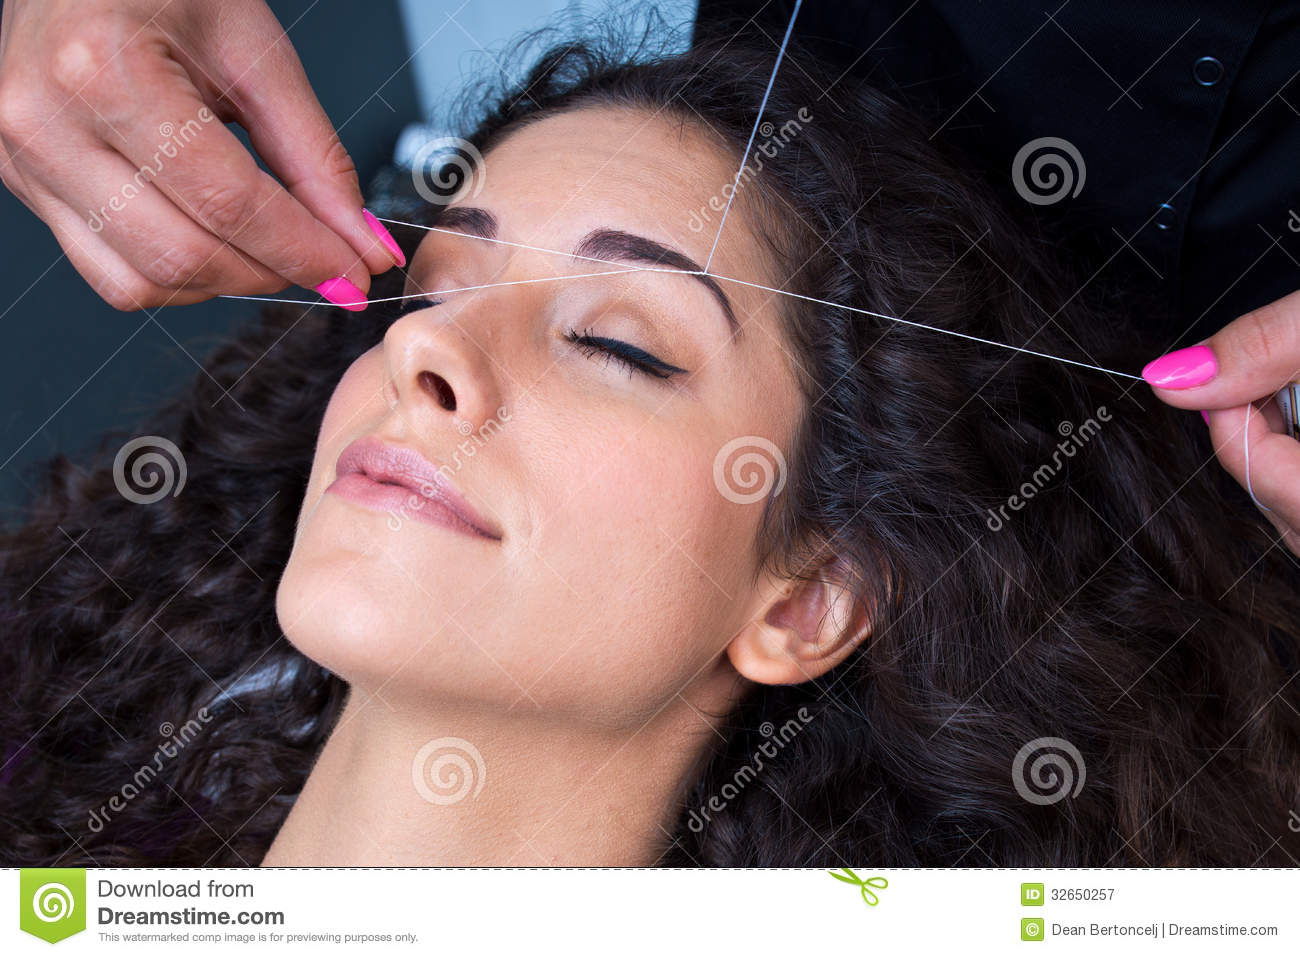 Eyebrow Threading Stock Images Download 256 Royalty Free Photos